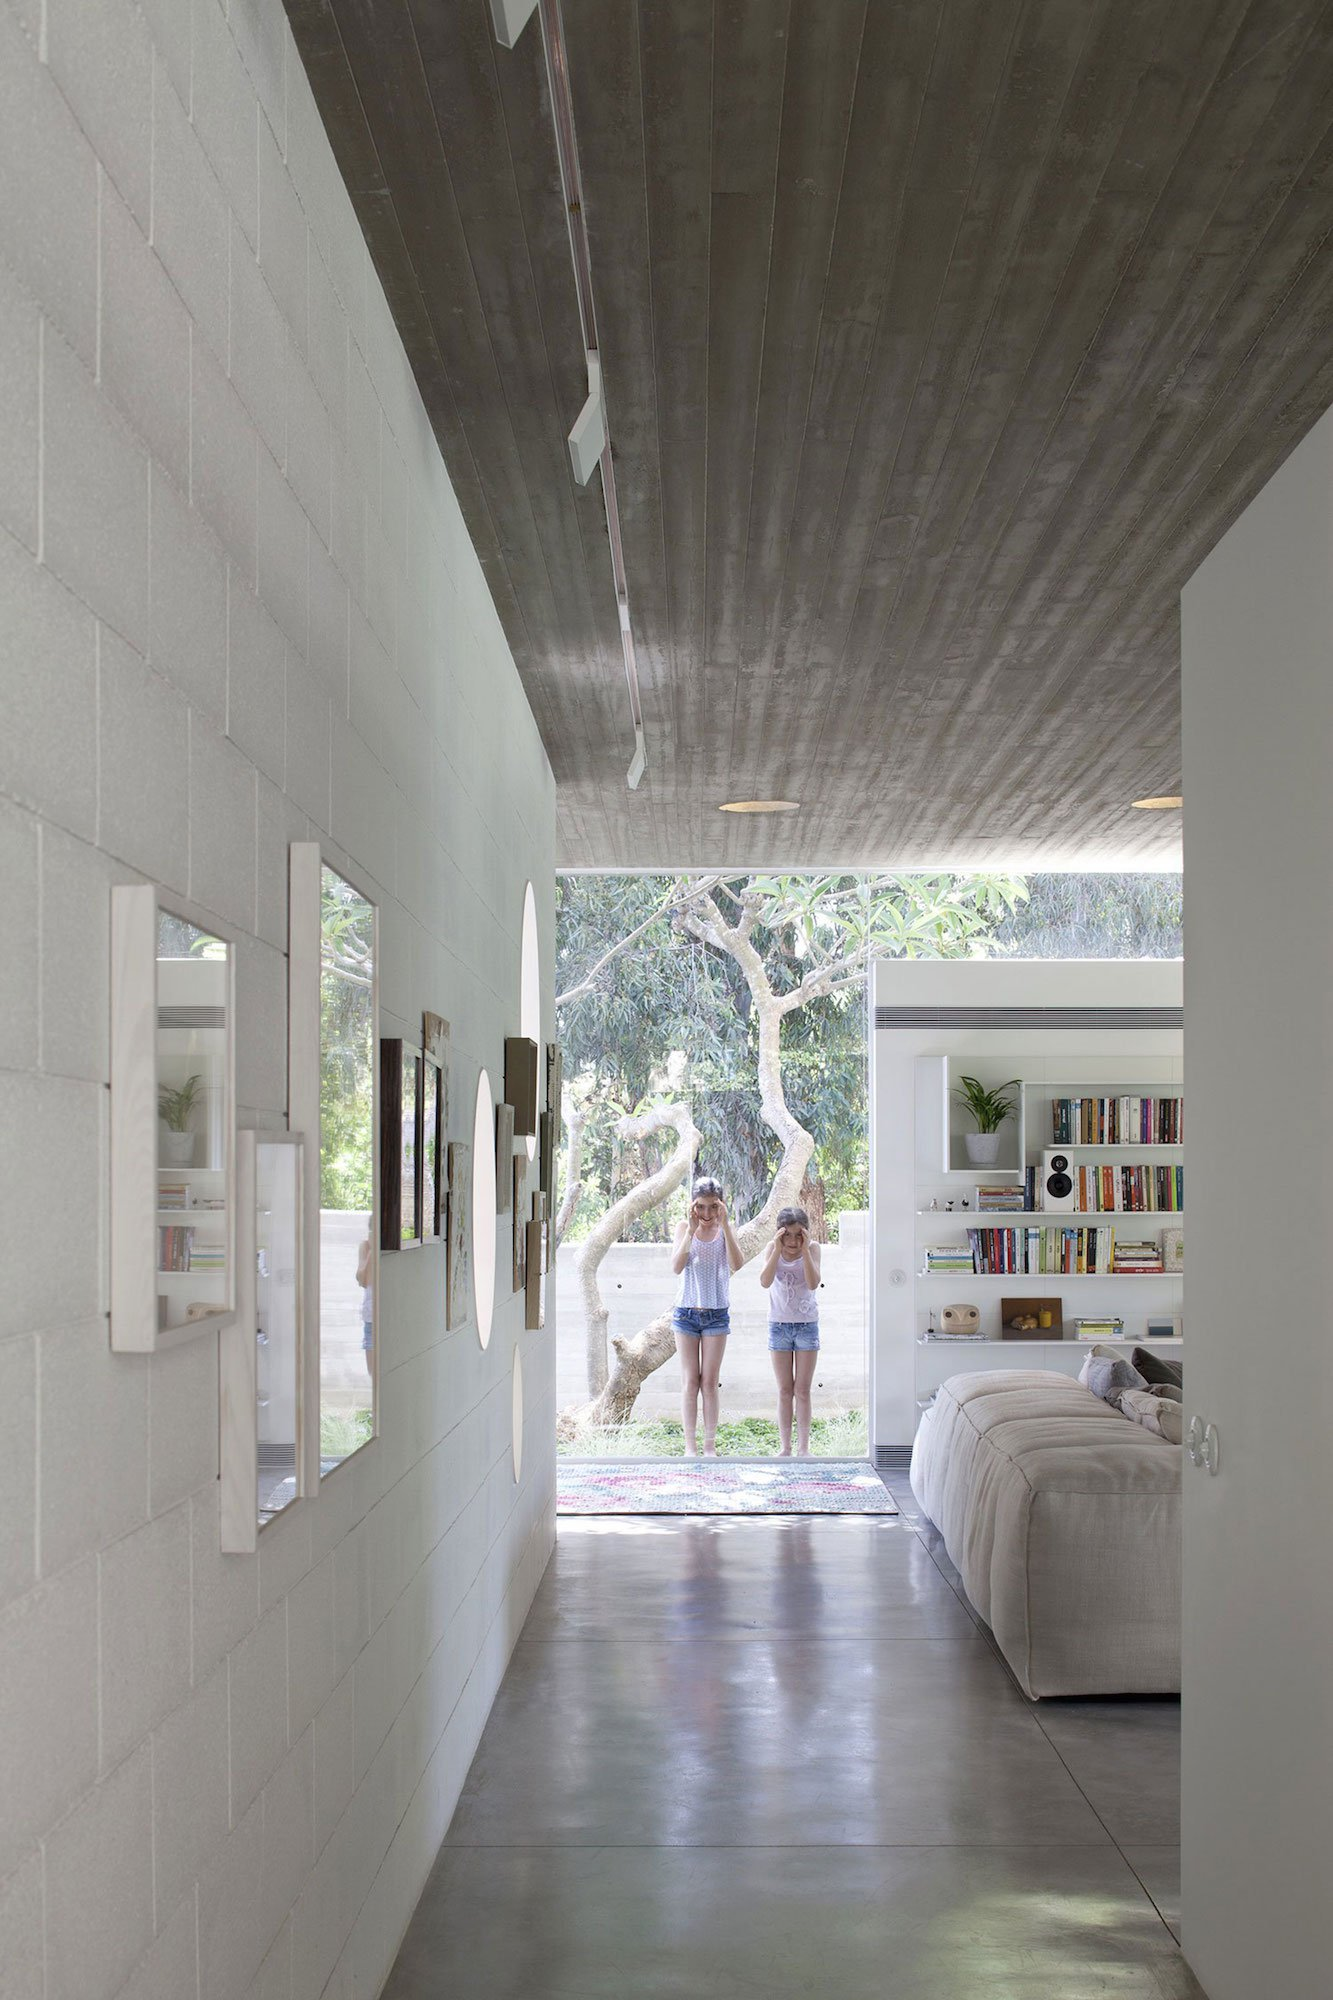 A-House-for-an-Architect-08